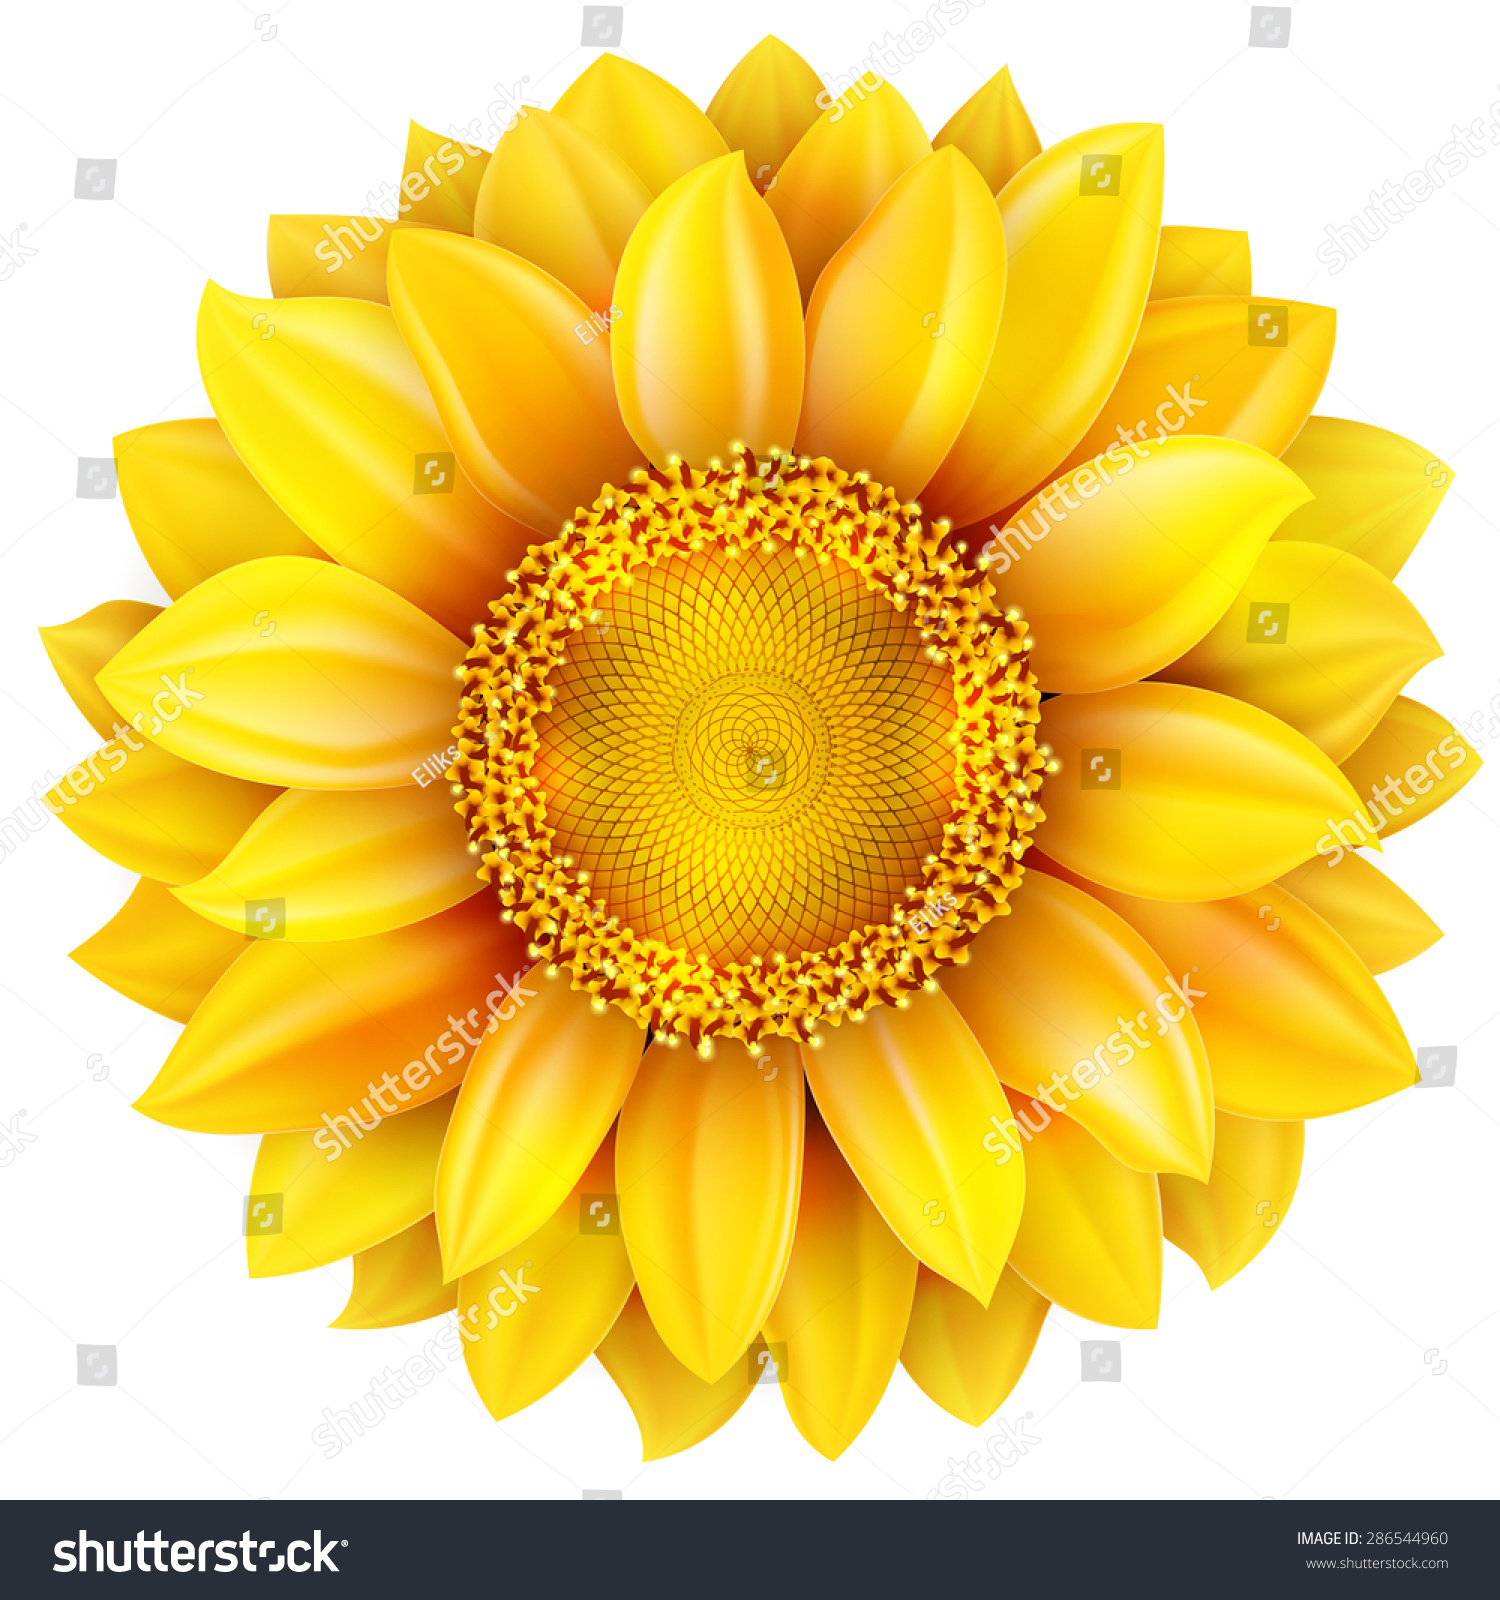 sunflower  high quality   eps 10 vector file included